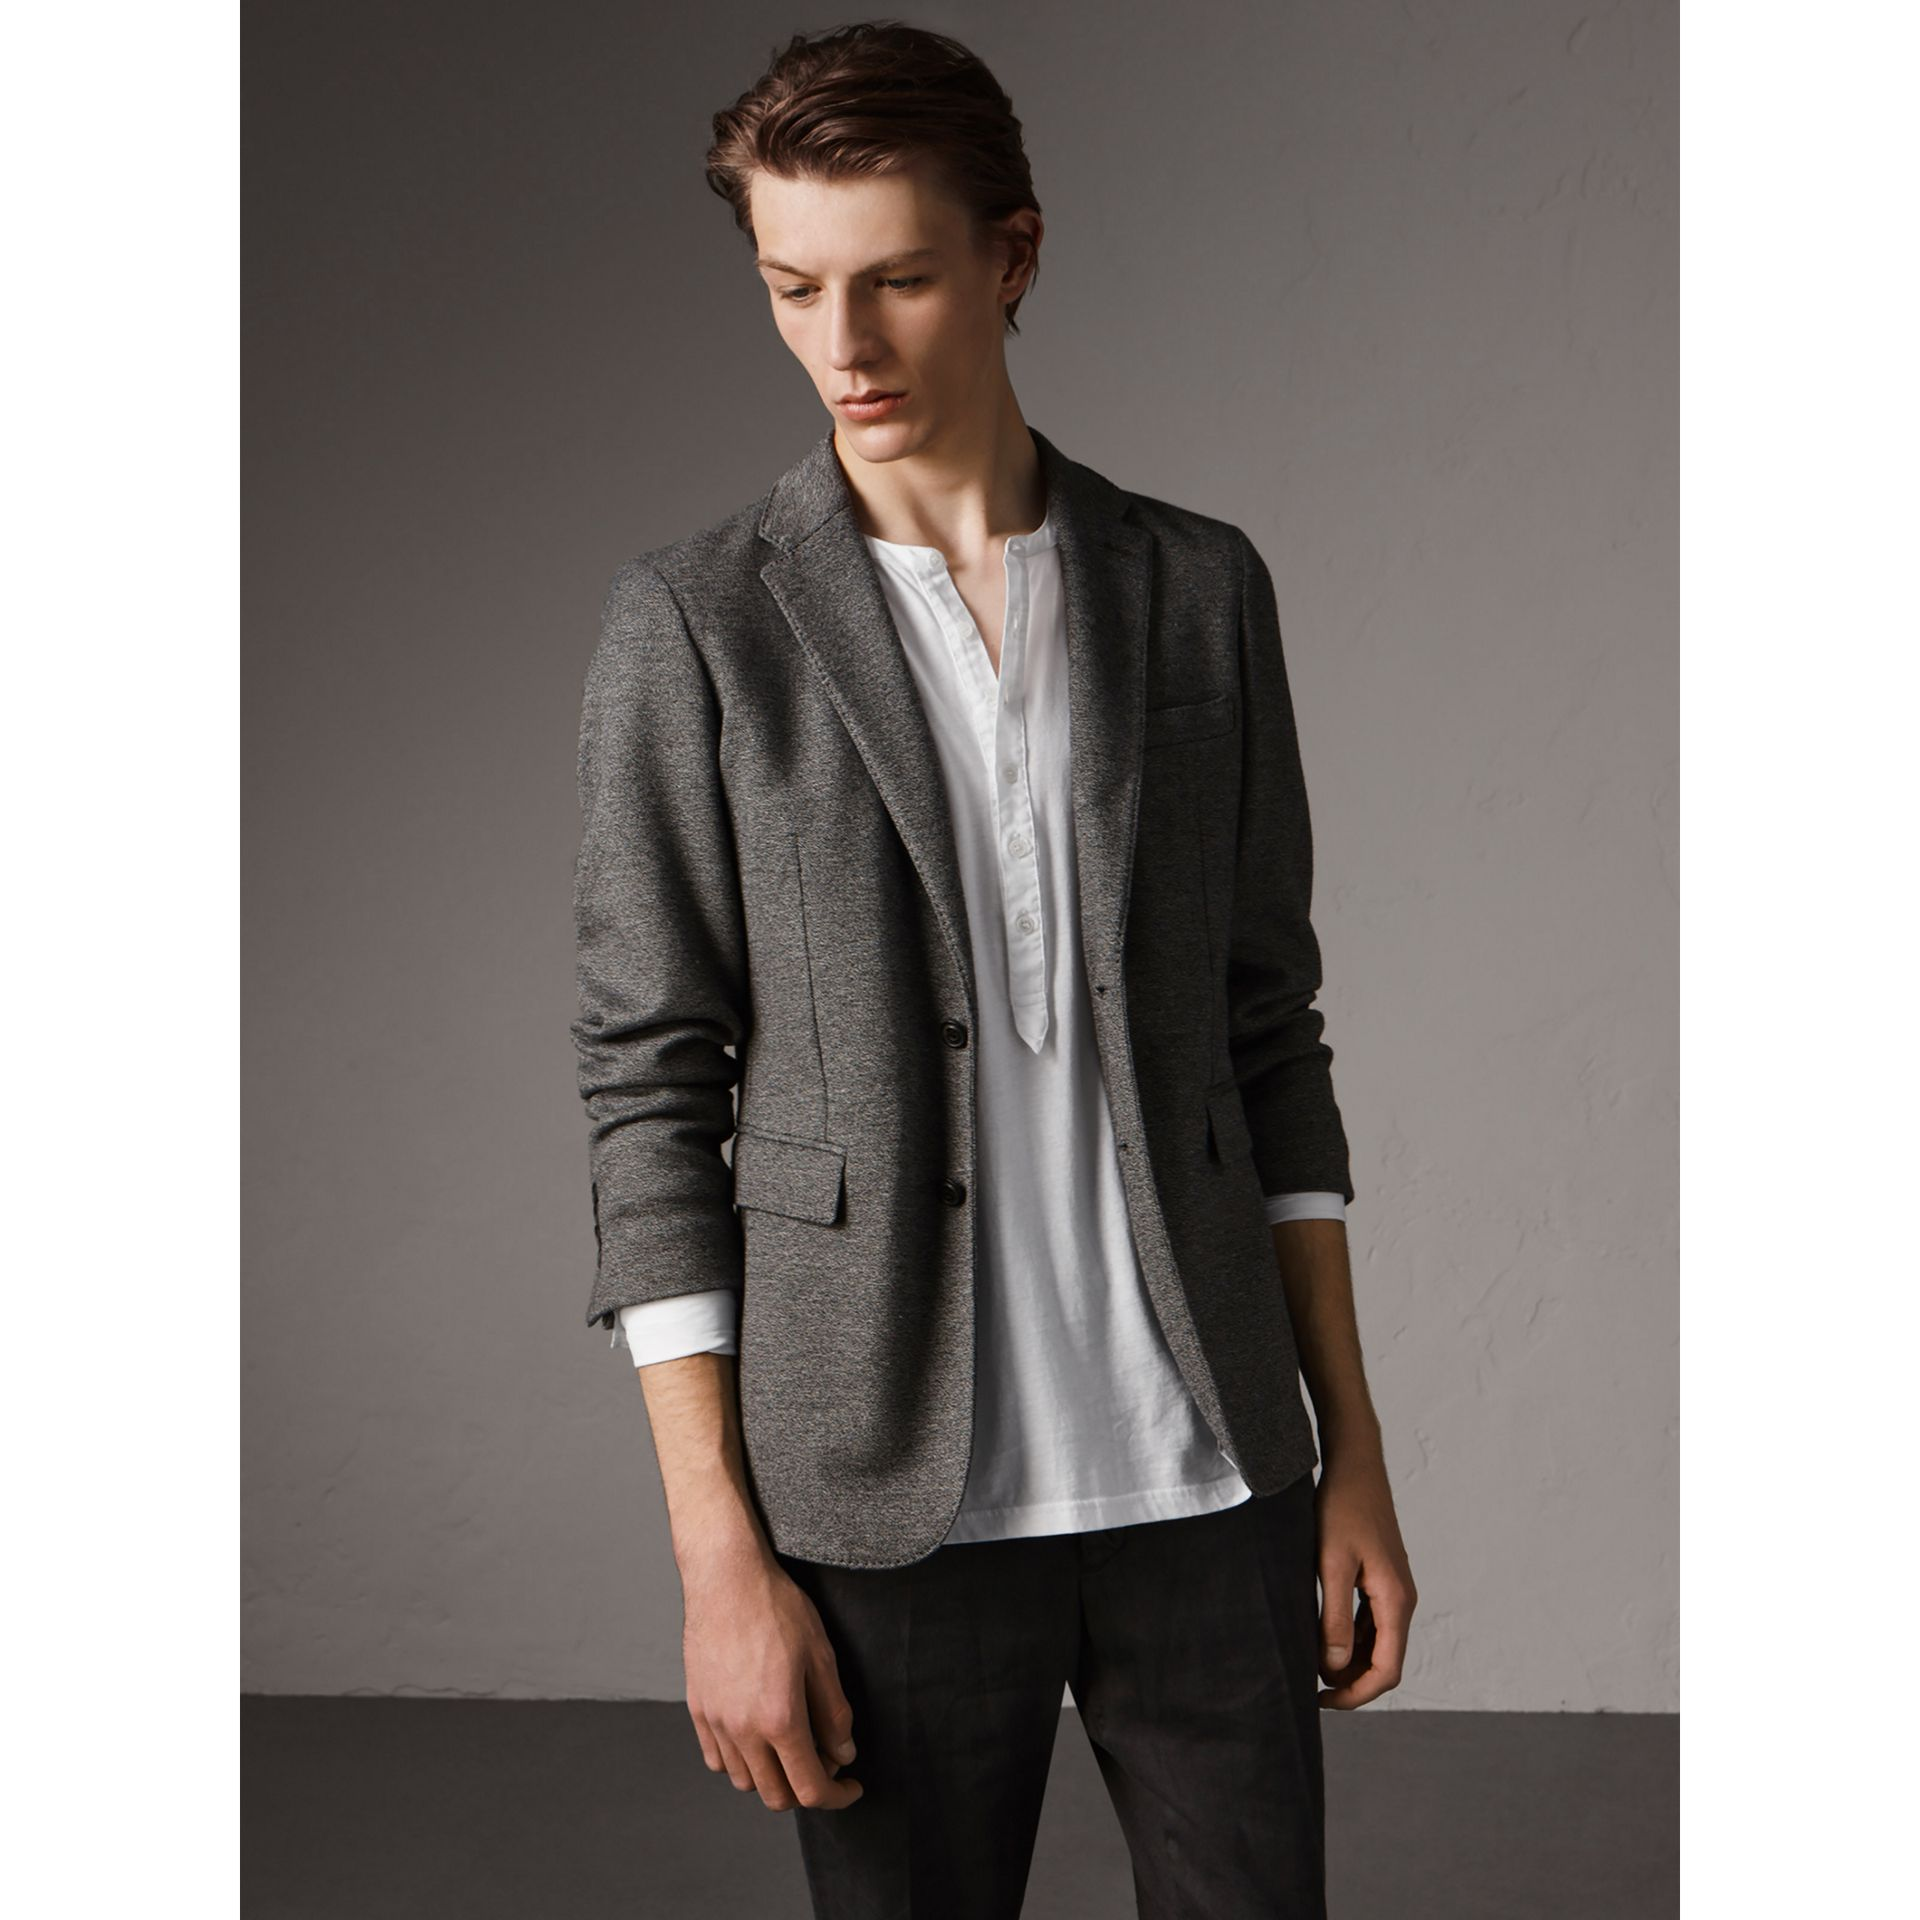 Soho Fit Cotton Wool Jersey Tailored Jacket in Charcoal Melange - Men | Burberry United Kingdom - gallery image 5